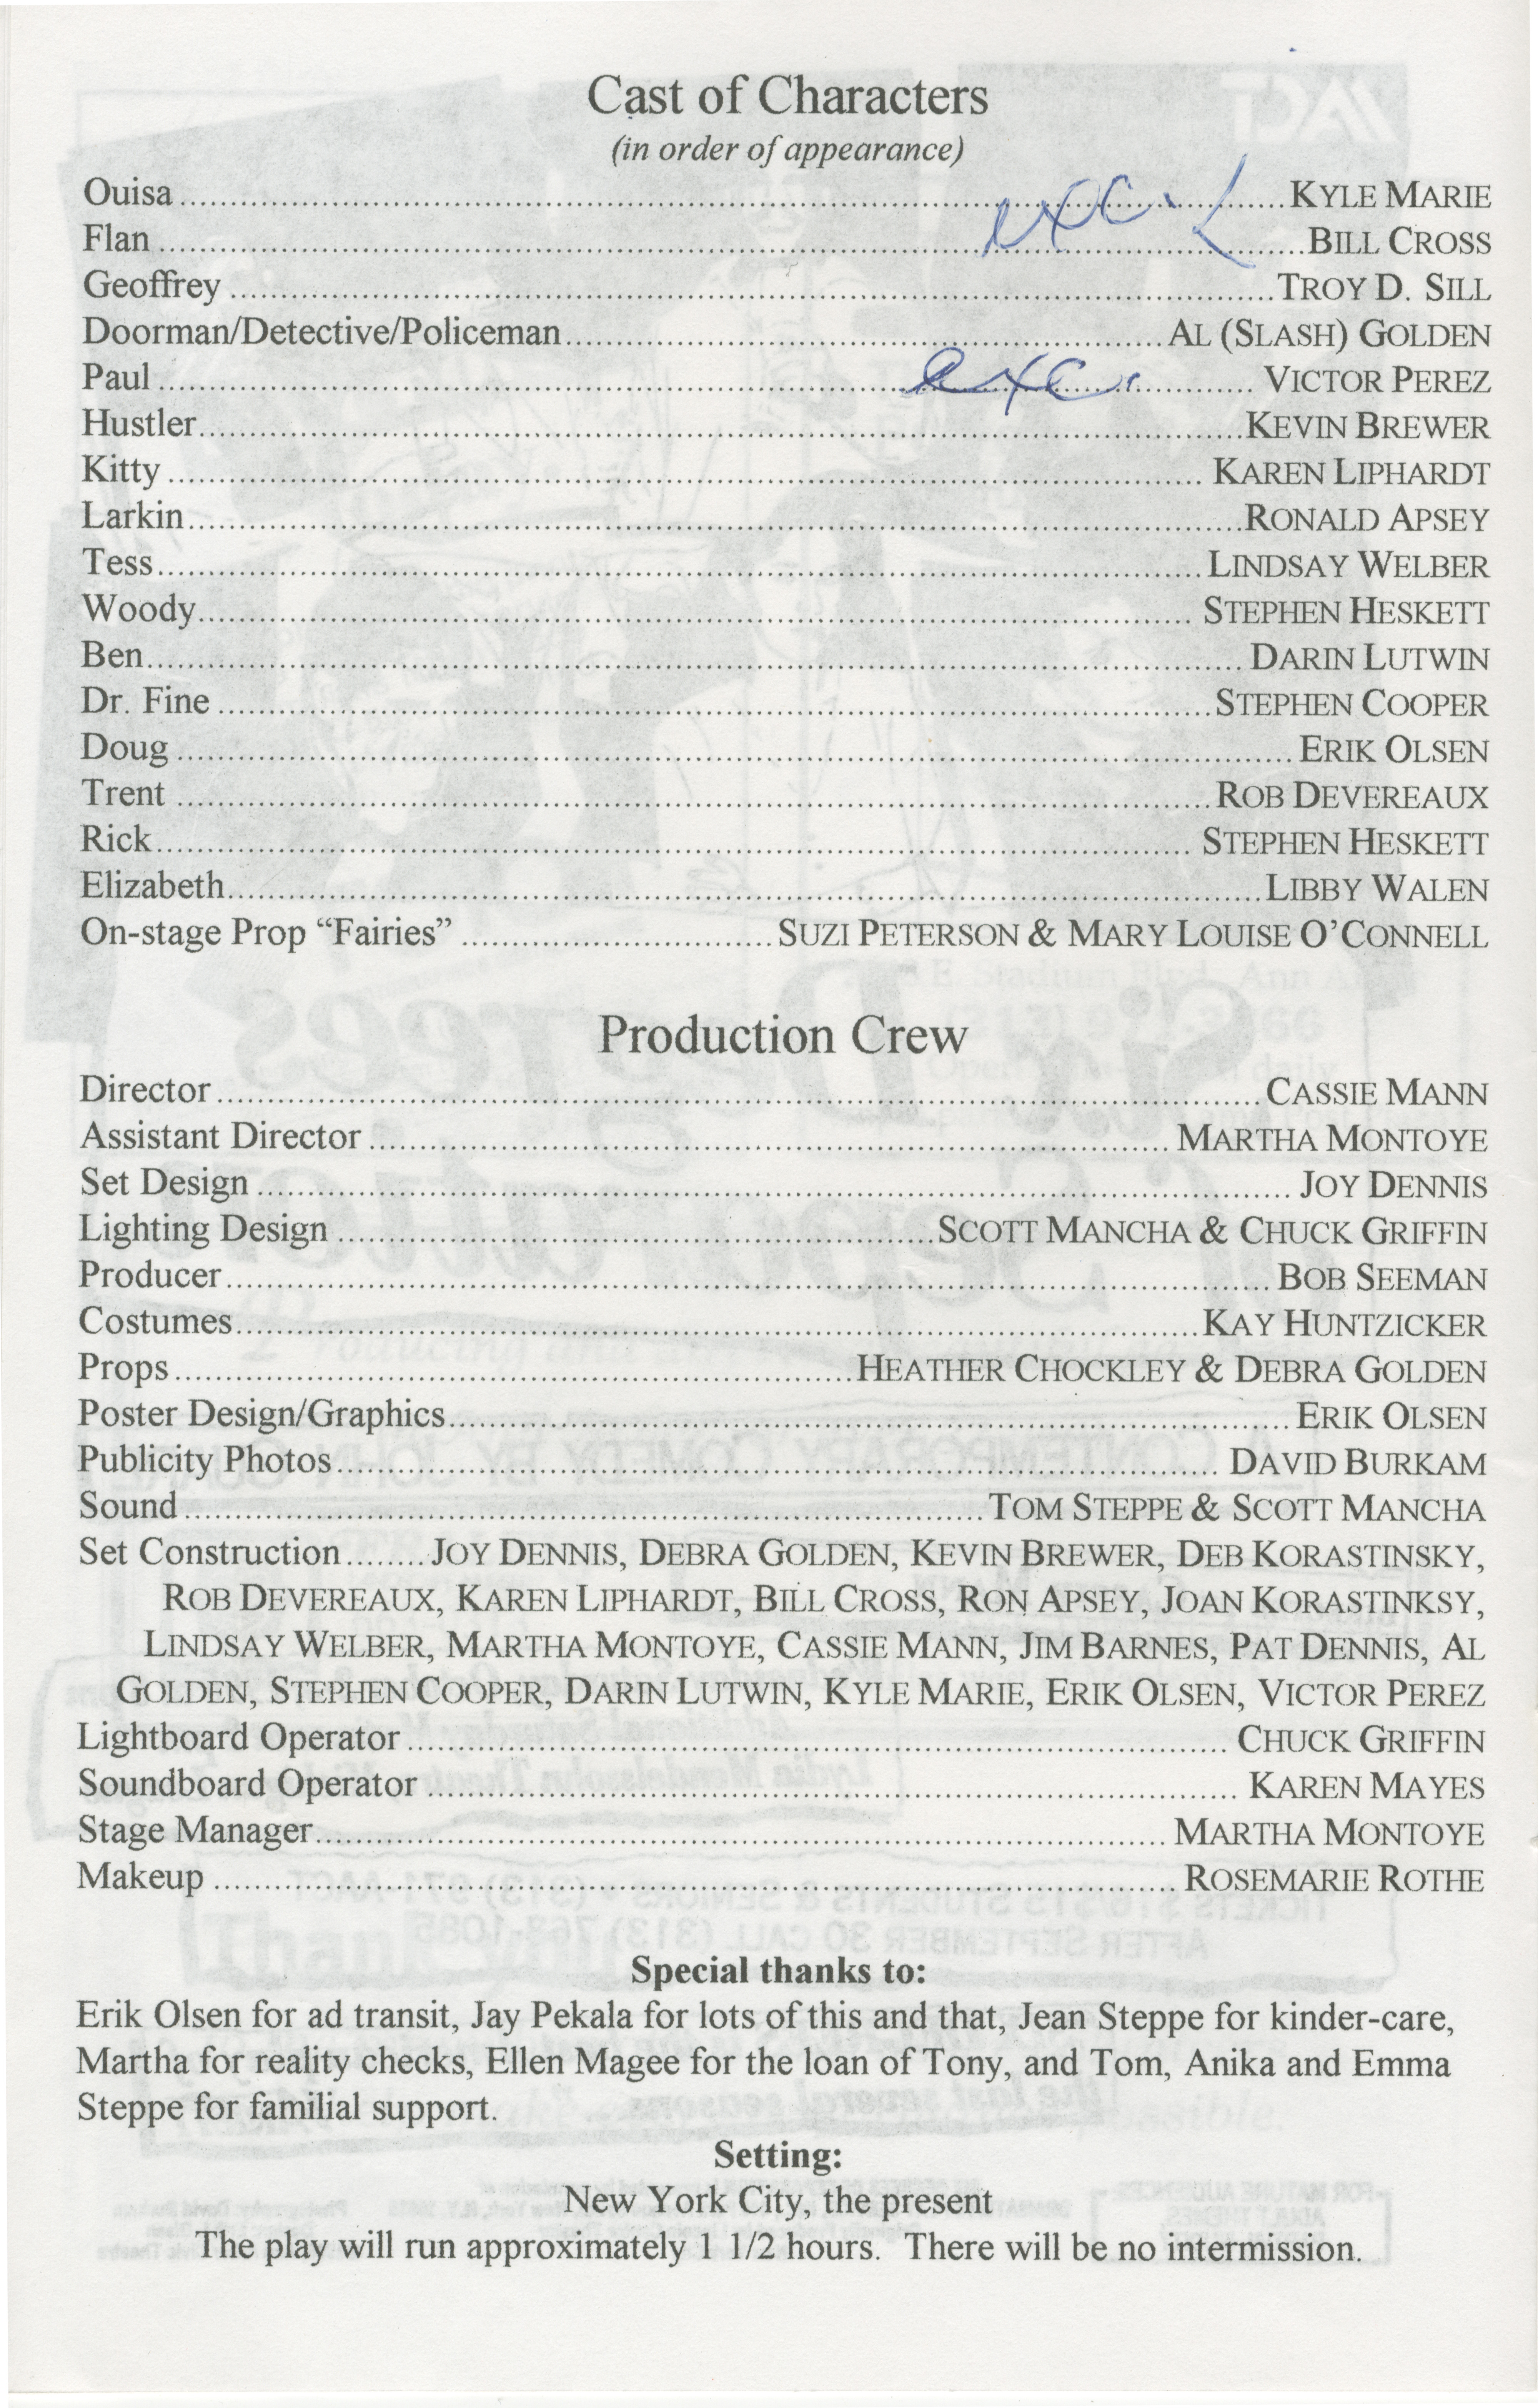 Ann Arbor Civic Theatre Program: Six Degrees of Separation, October 02, 1996 image